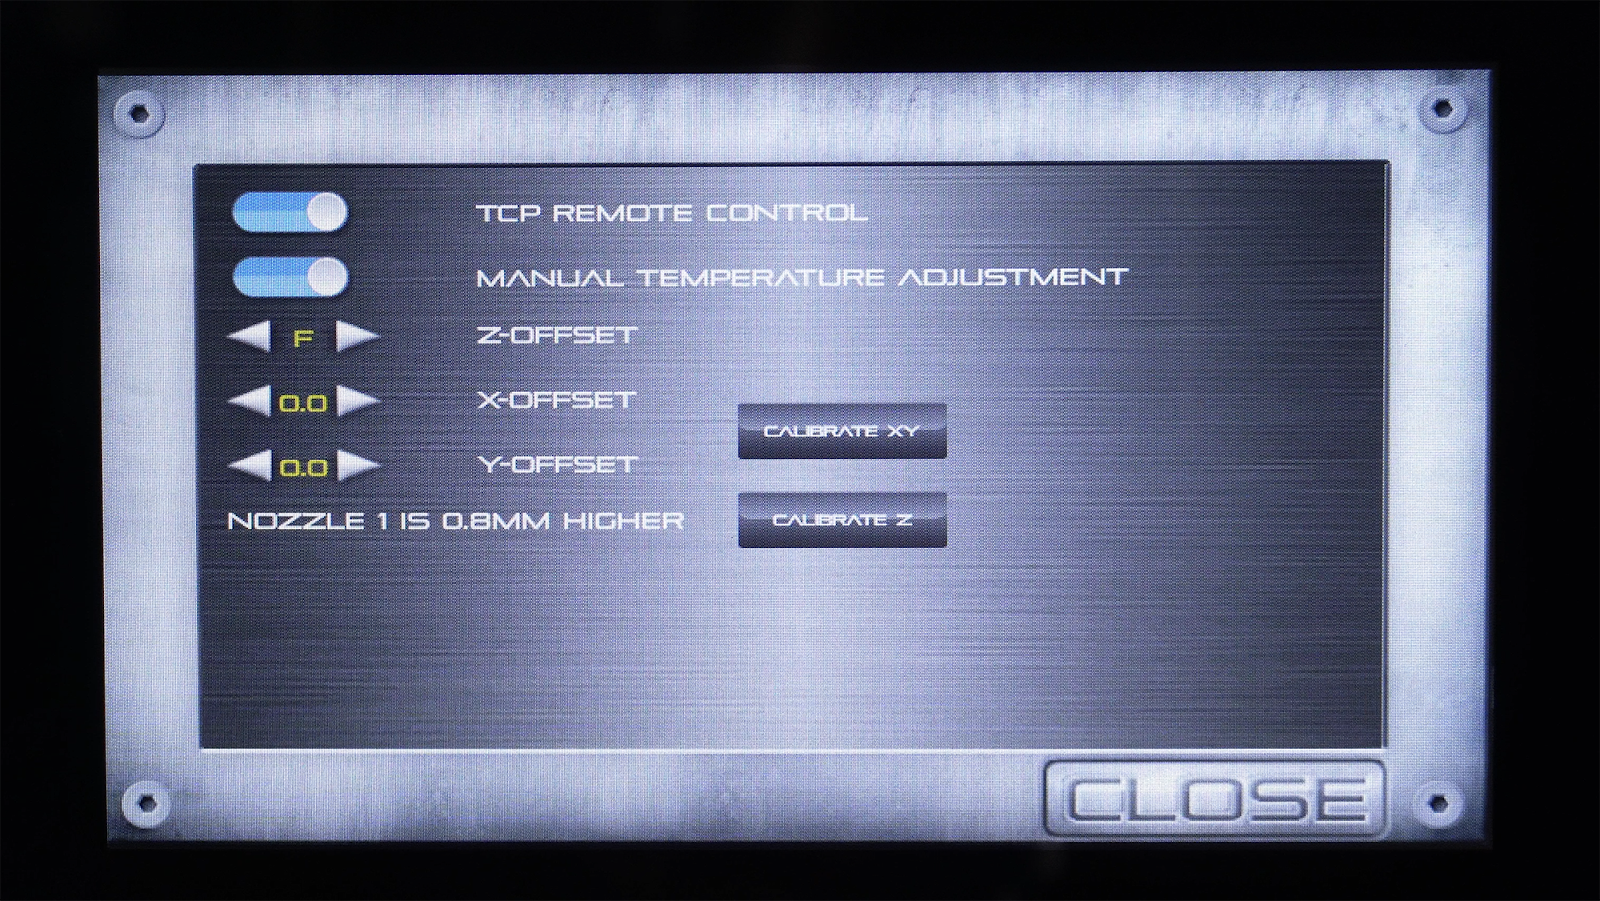 The new calibration menu showing the CALIBRATE Z option.